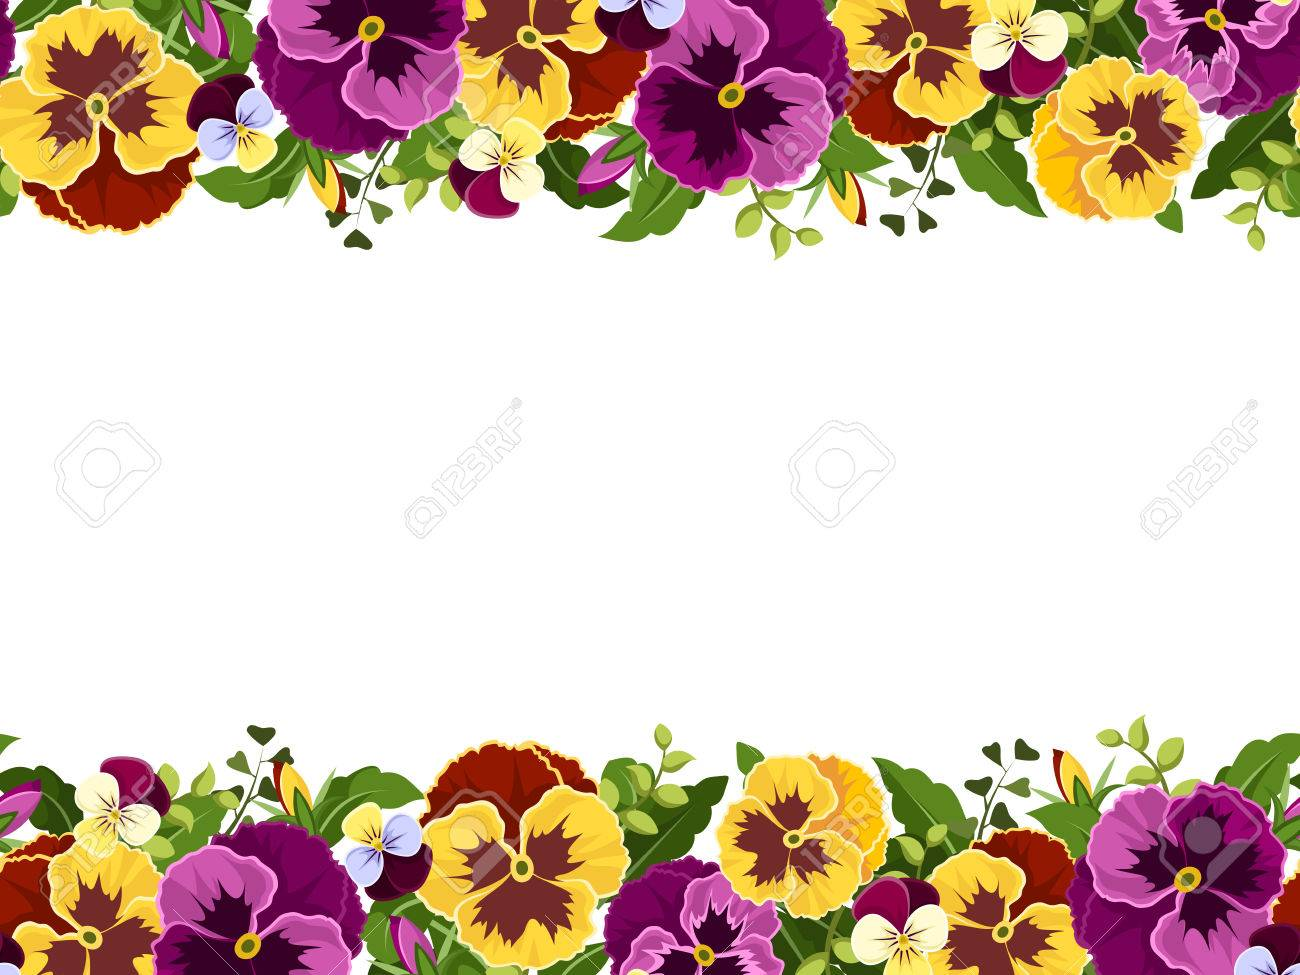 Vector Horizontal Seamless Frame With Yellow And Purple Pansy